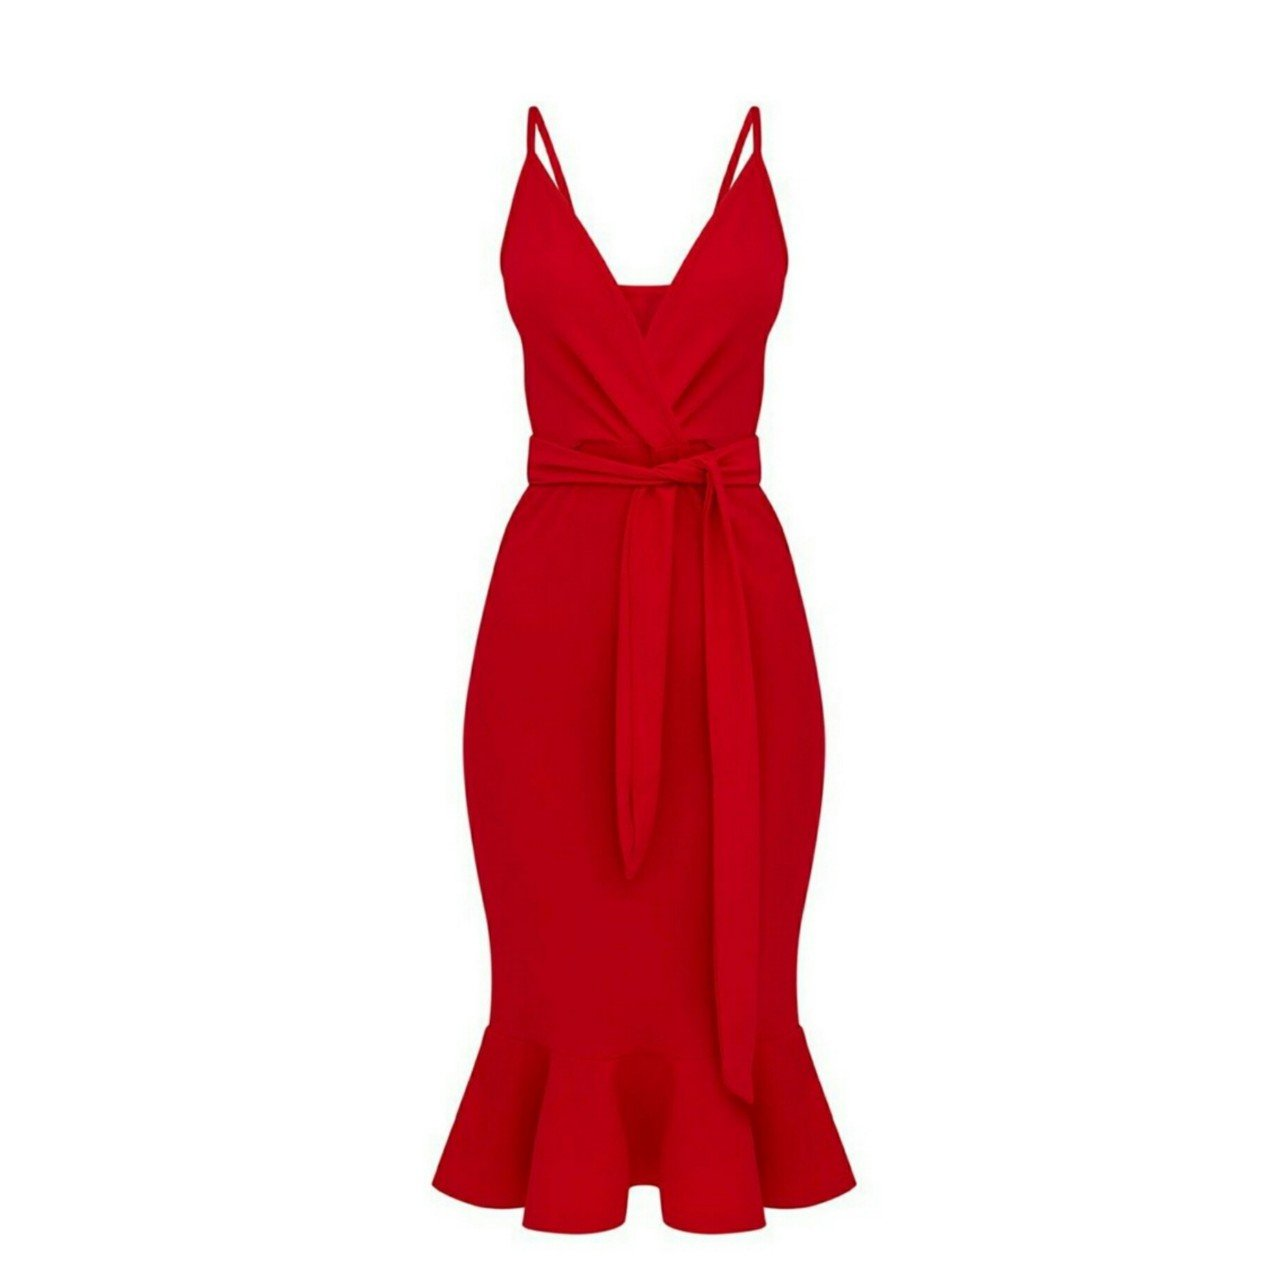 219a846da1d5 @cairen2706. 8 months ago. Upton, West Yorkshire, United Kingdom. PLT Pretty  Little Thing red strappy tie waist fishtail midi dress - UK size 10